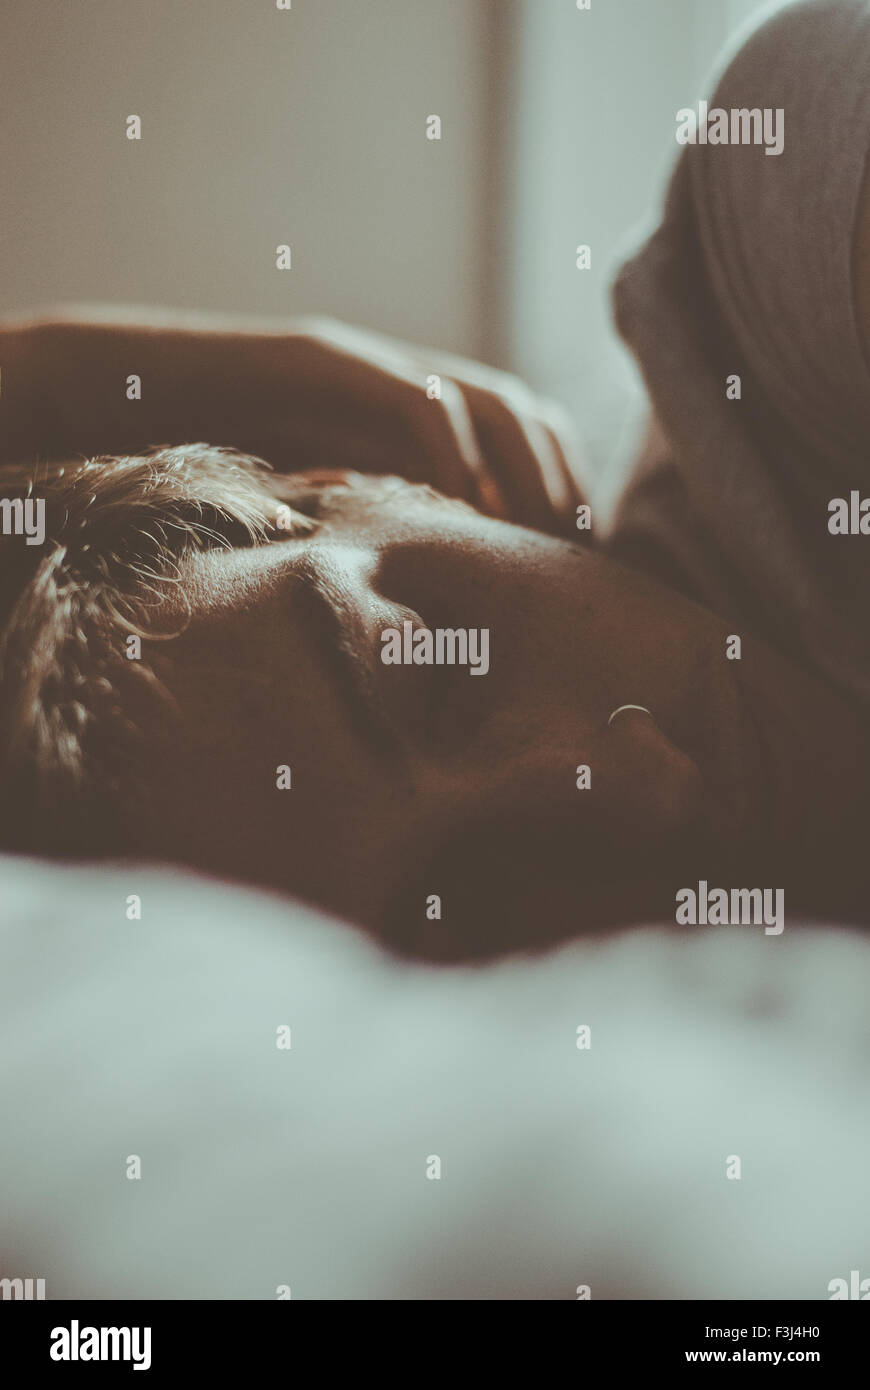 Handsome young man sleeping - Stock Image